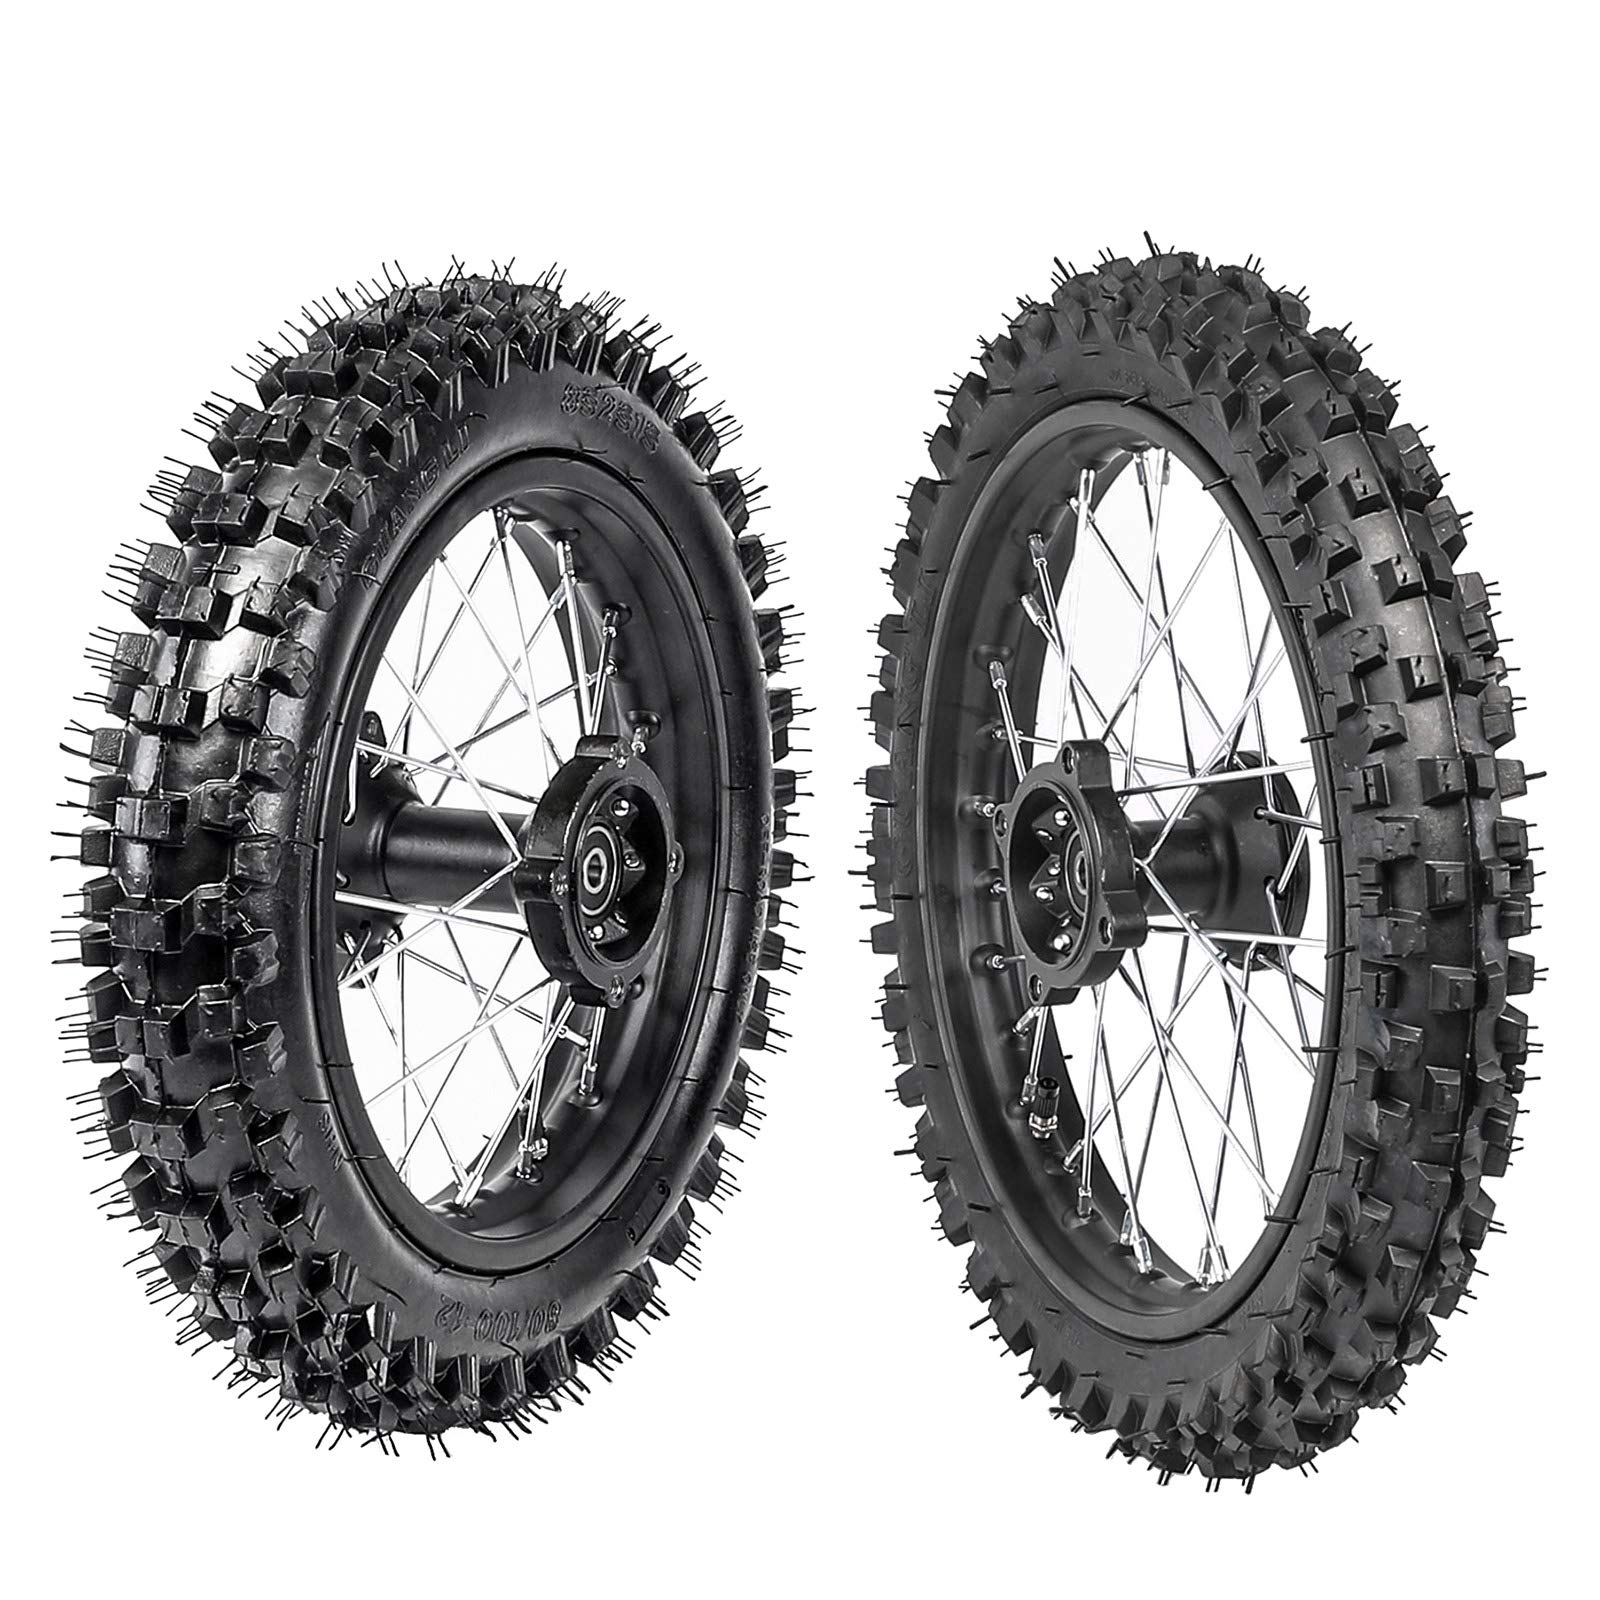 ZXTDR 60/100-14 Front & 80/100-12 Rear Disc Brake Wheel Rim Tires With 15 Bearing for Pit Dirt Bike by ZXTDR